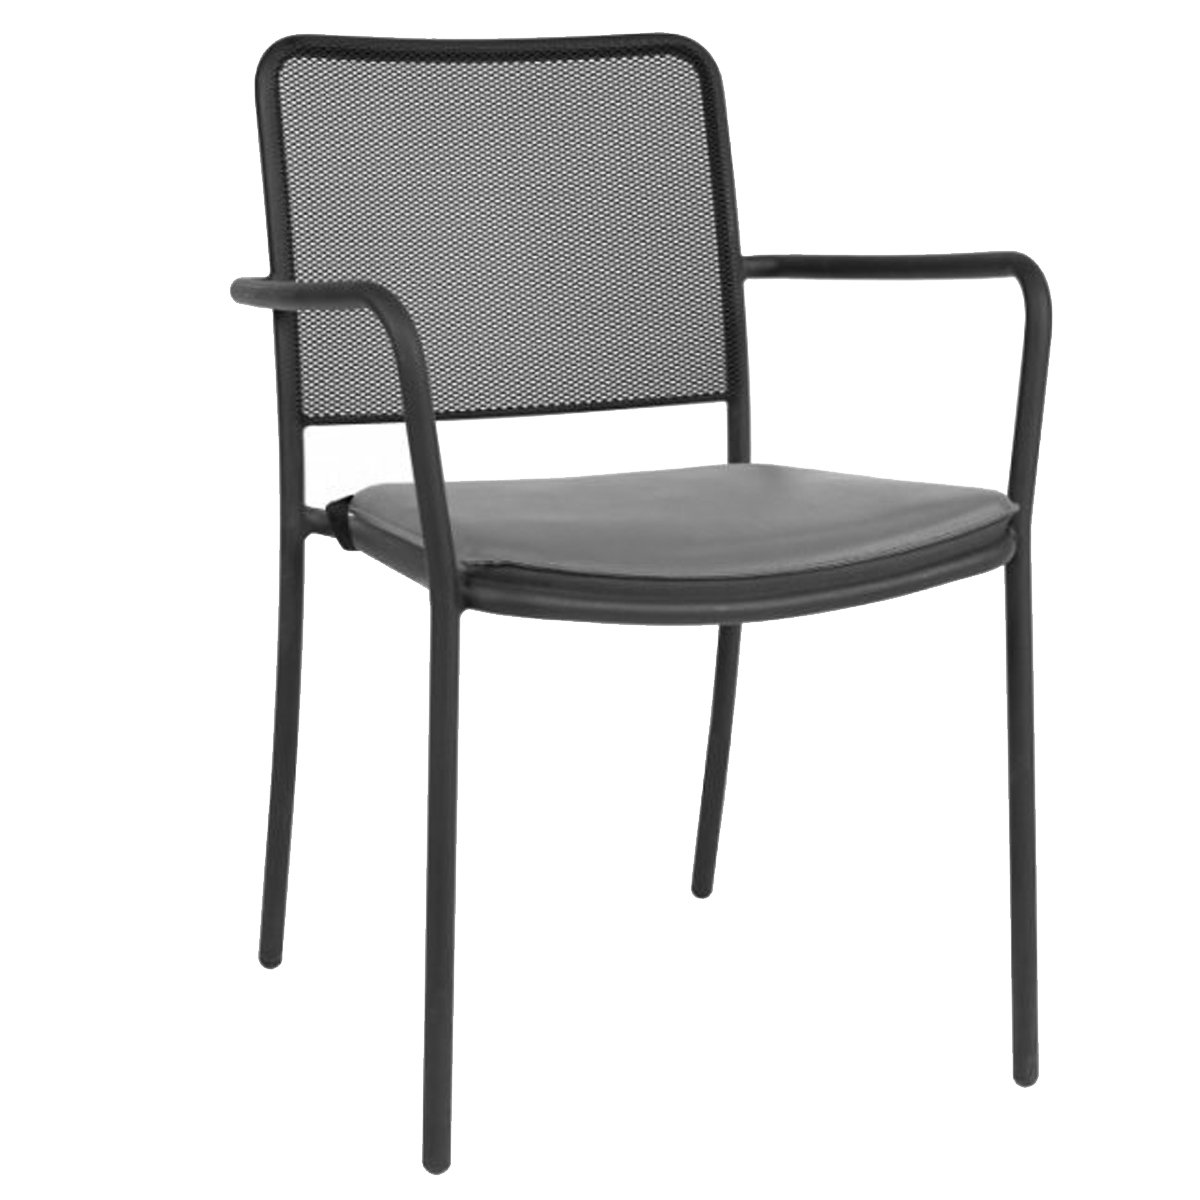 Mesh Metal Stackable Dining Chair Neo 205 Metal Chairs